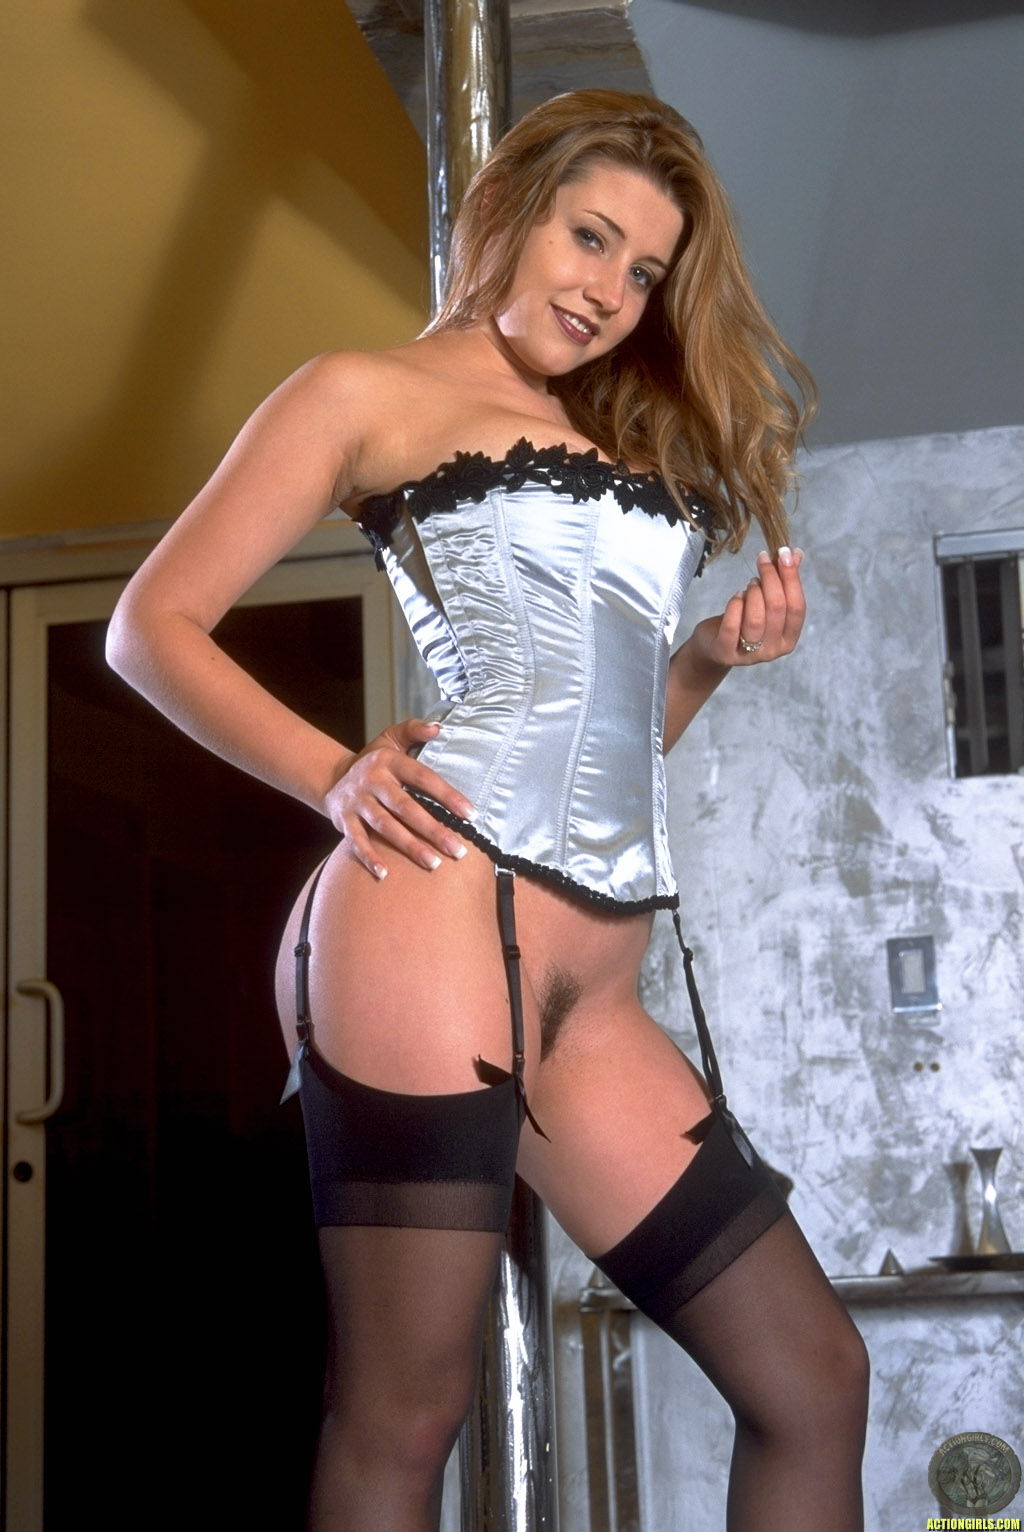 Erica Campbell Big Tits in Silver Corset for ActionGirls